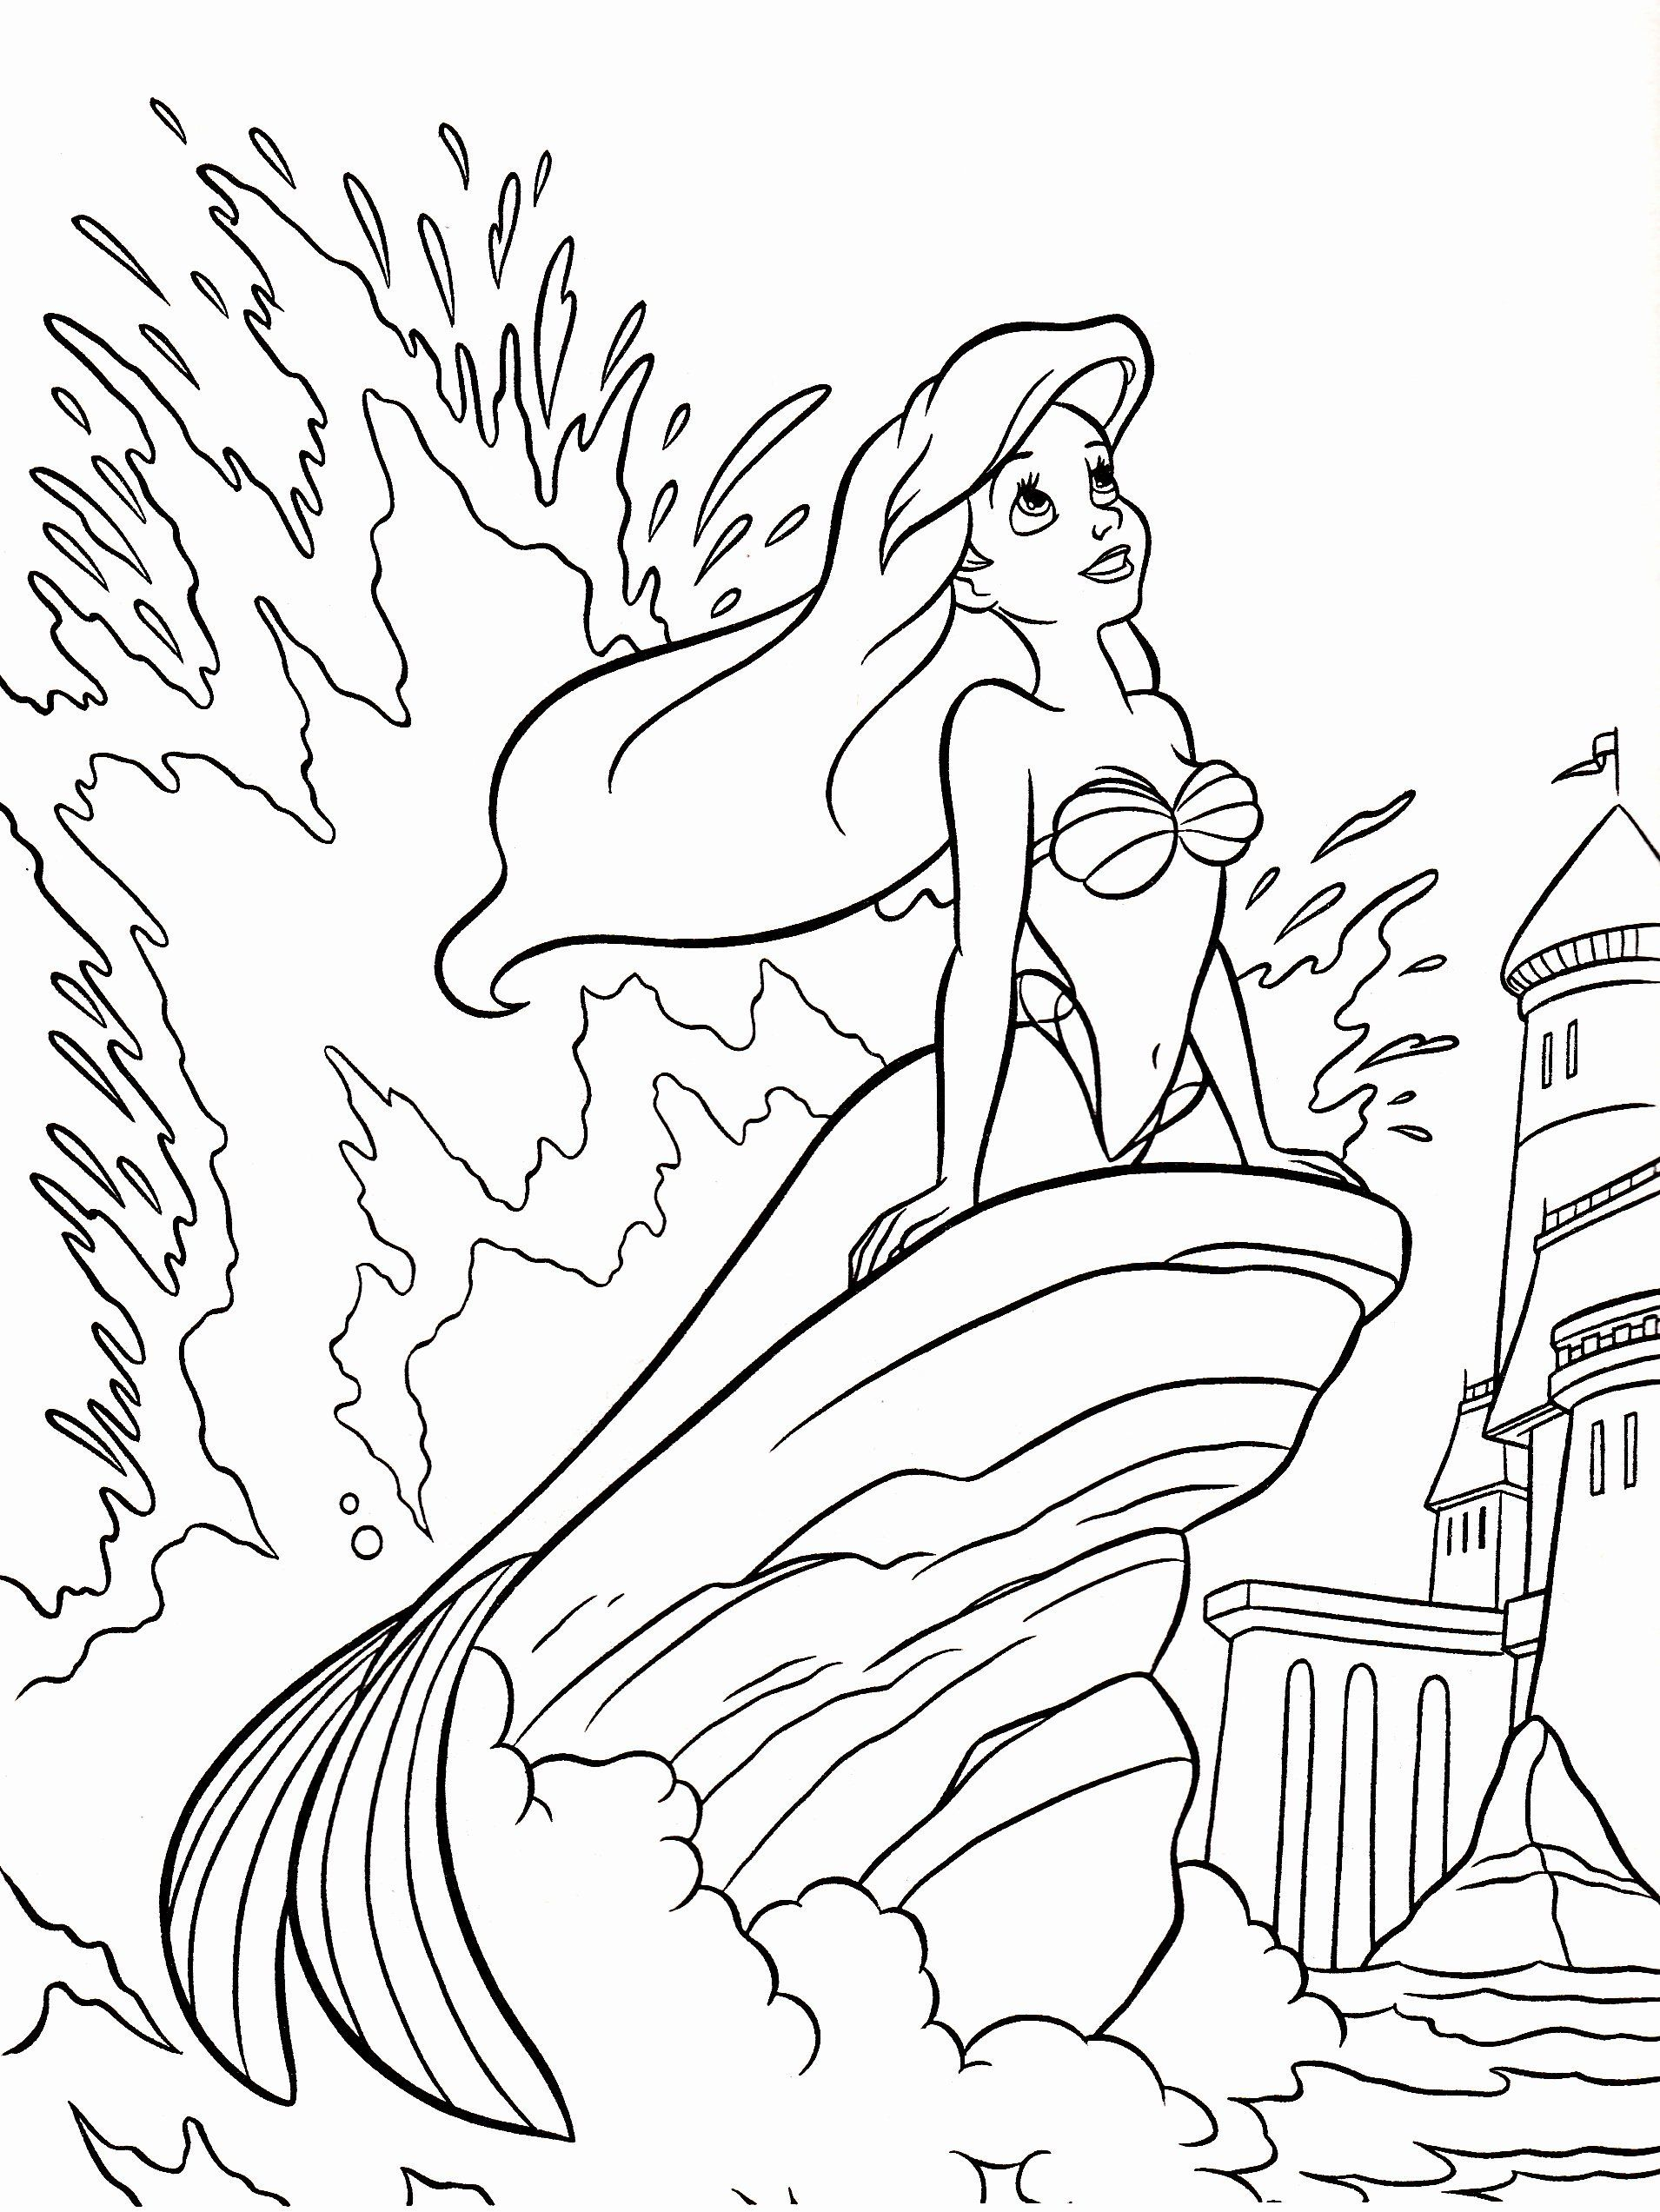 Detailed Disney Coloring Pages Luxury Walt Disney Coloring Pages Princess Ariel Walt Disney Warna Blog